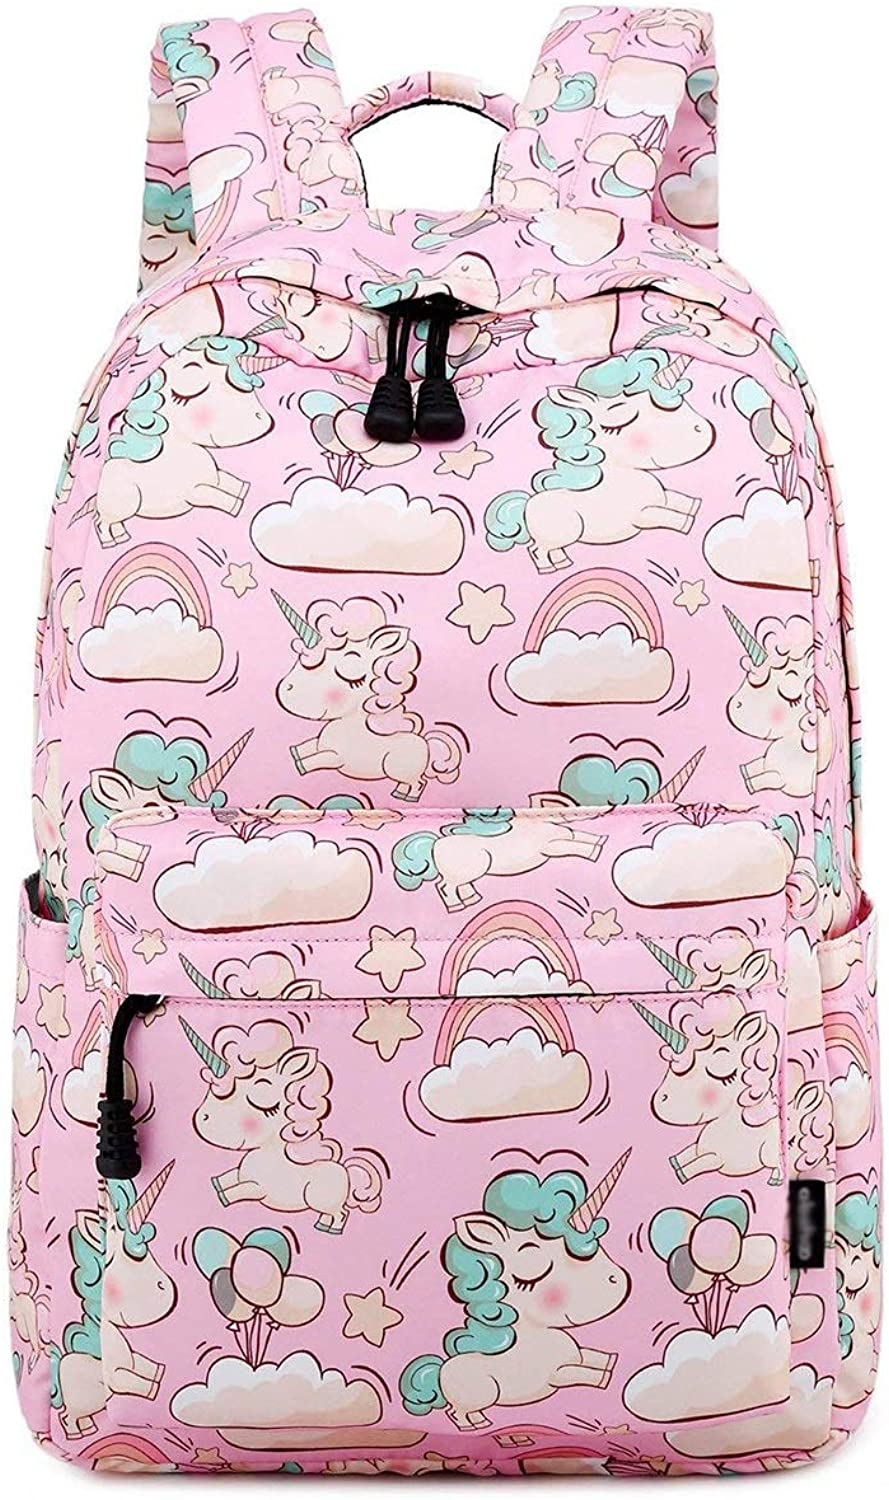 TLMY Student Waterproof Large Capacity Schoolbag Campus Sweet Backpack backpack (color   PINK)